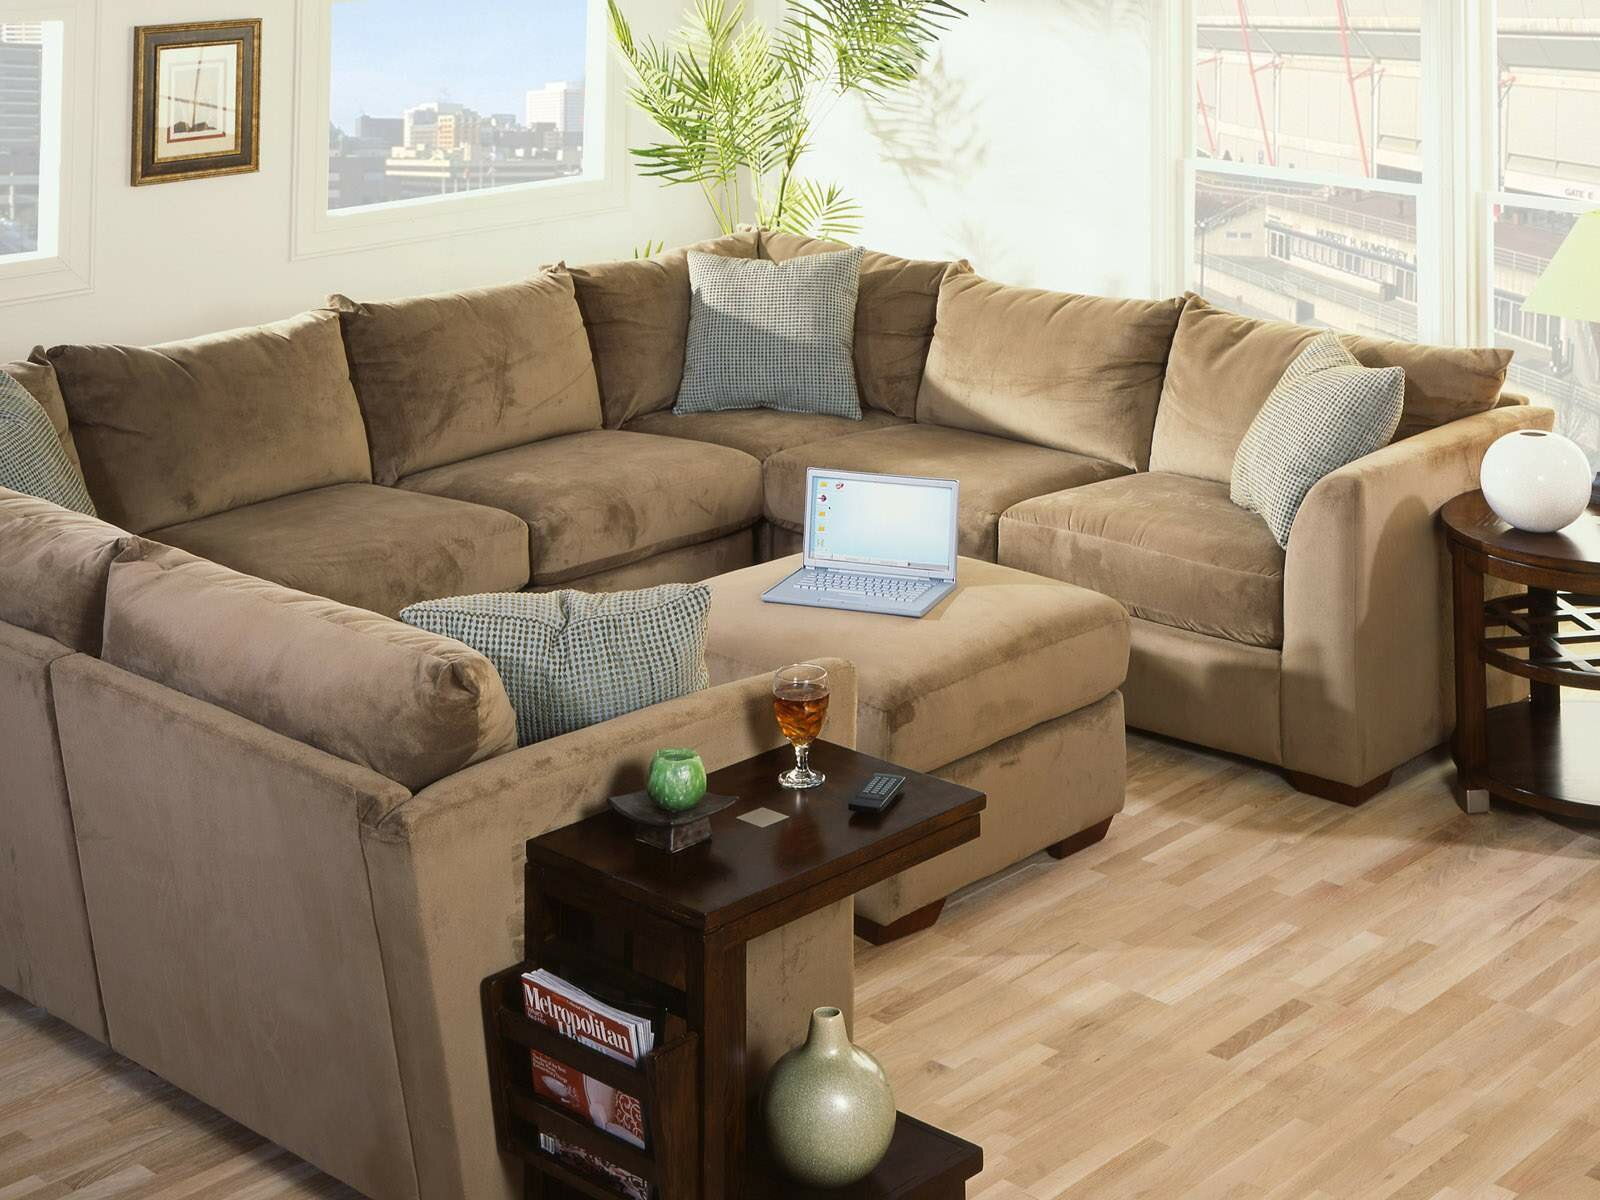 15 really beautiful sofa designs and ideas for Sectional living room ideas